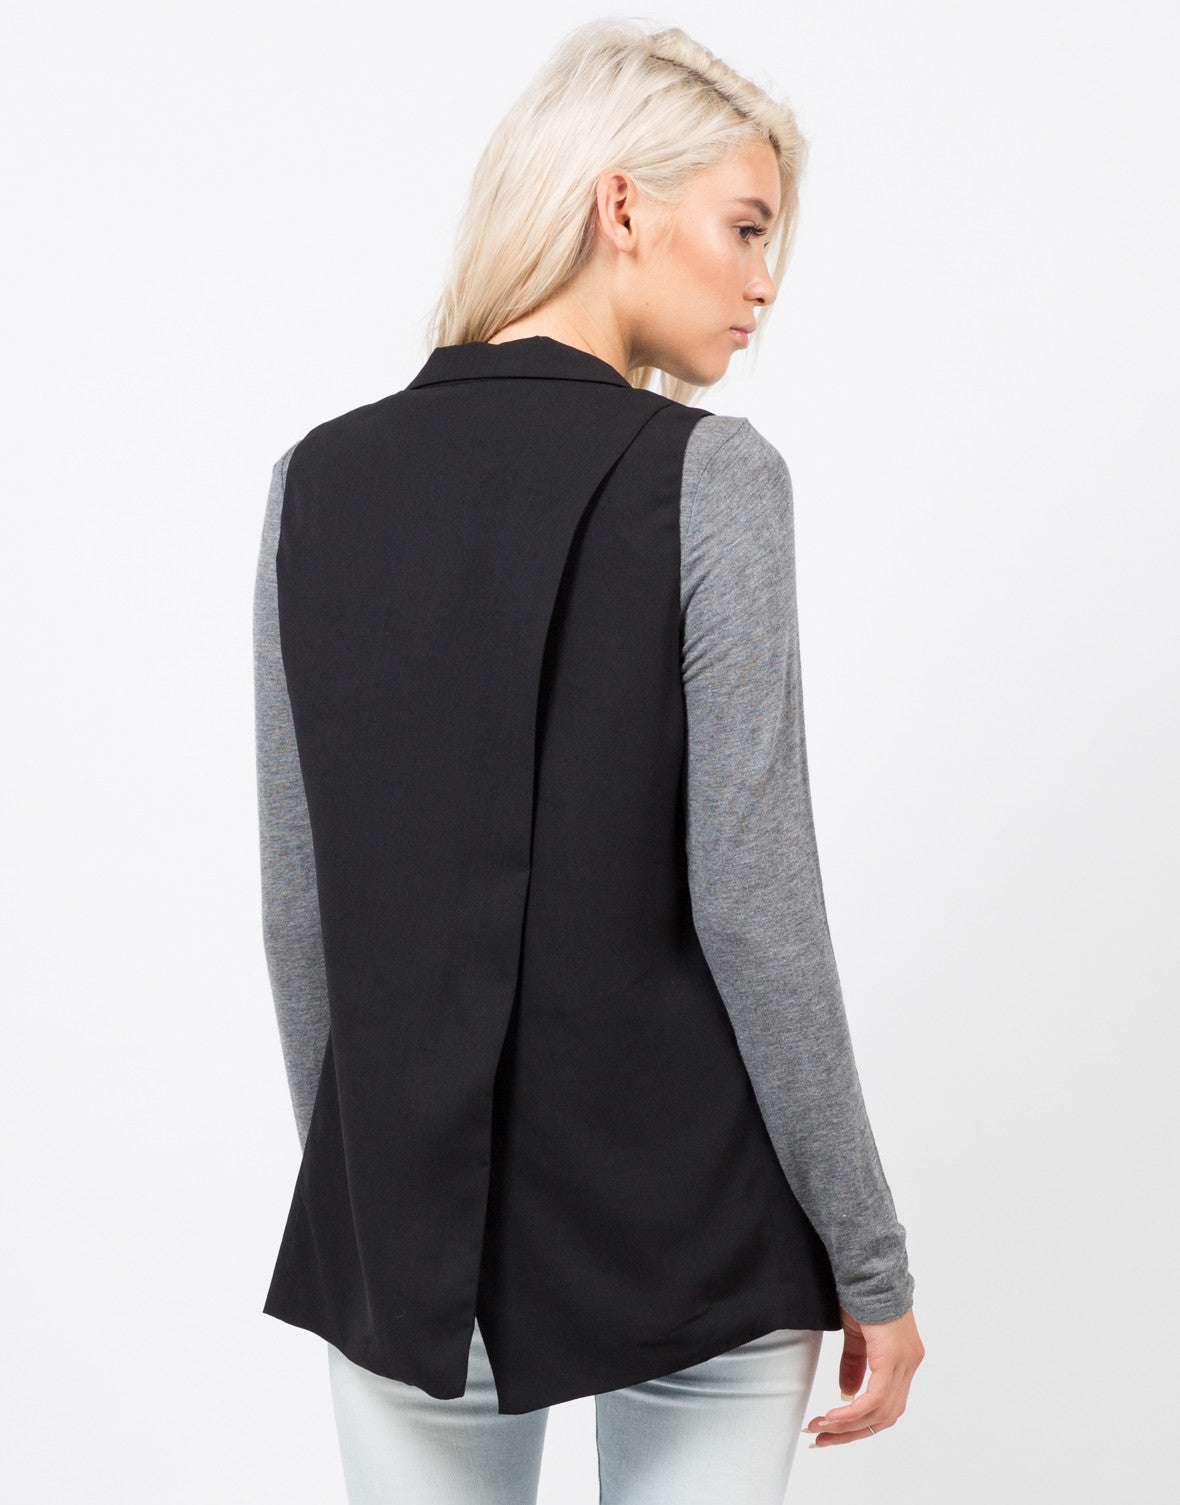 Back View of Crepe Blazer Vest